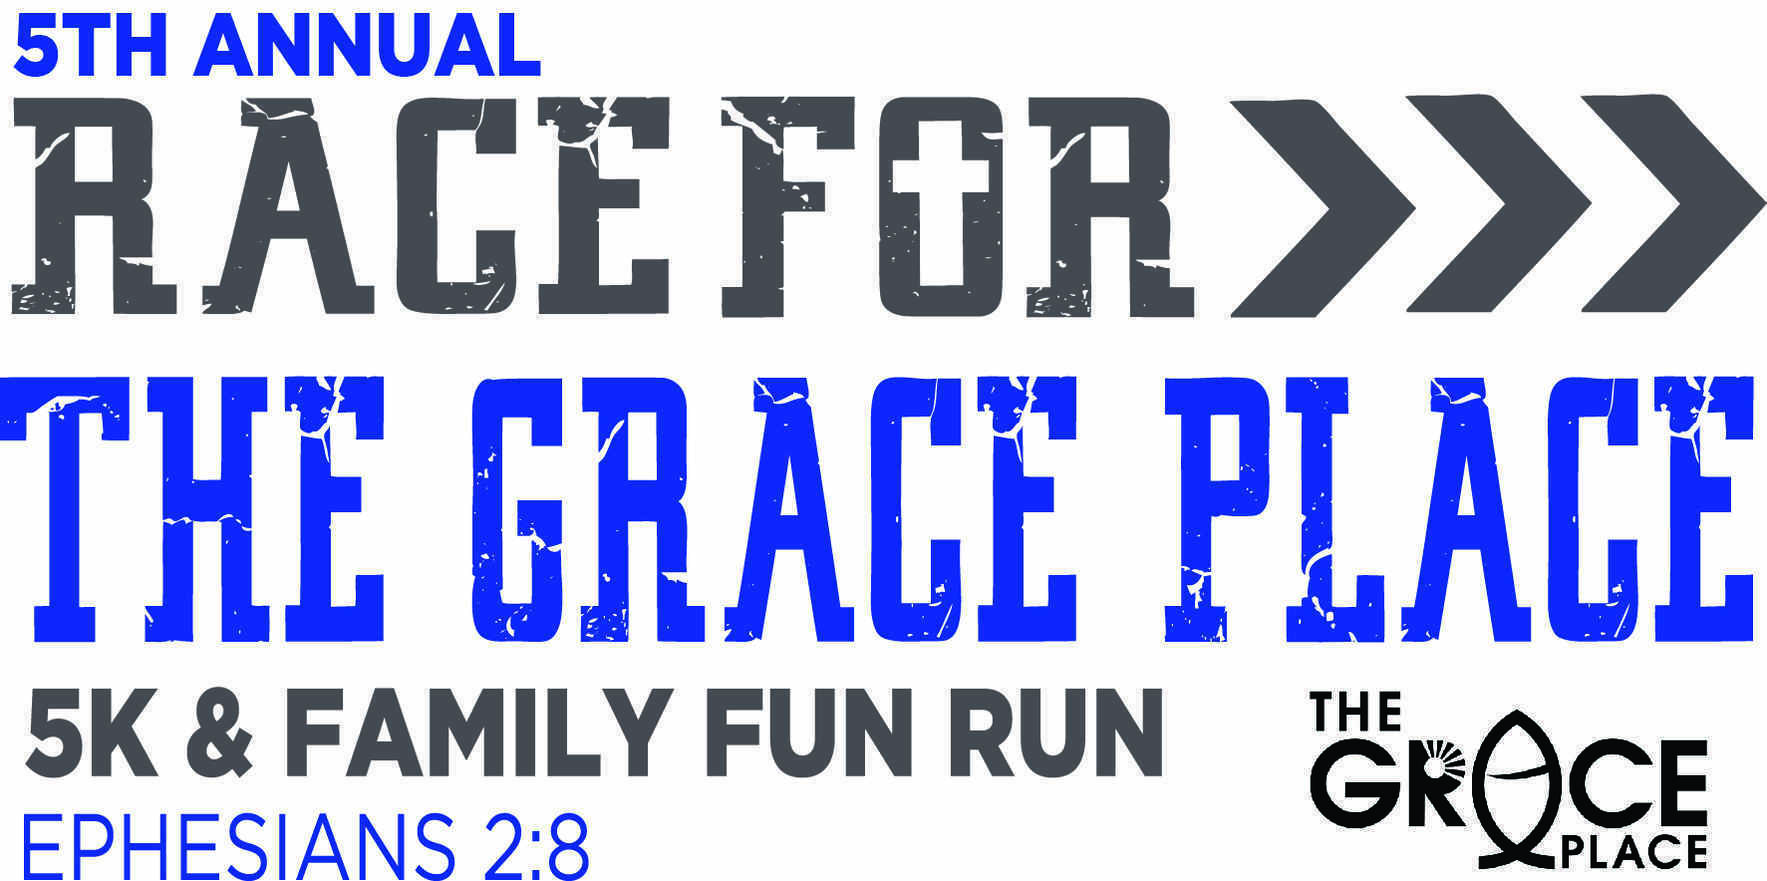 Race for The Grace Place image